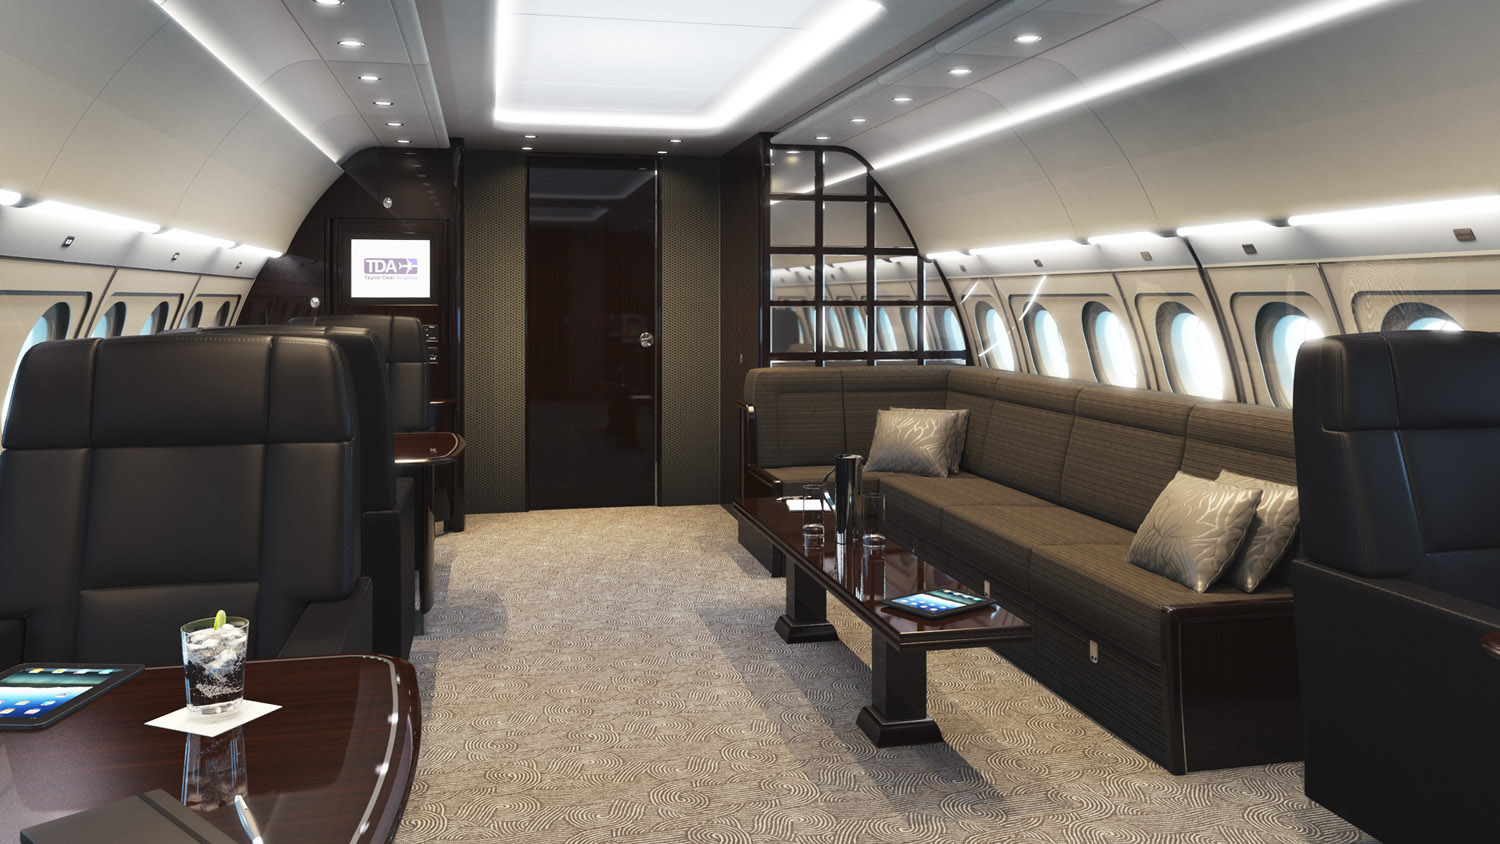 Aircraft interior rendering of the front lounge area